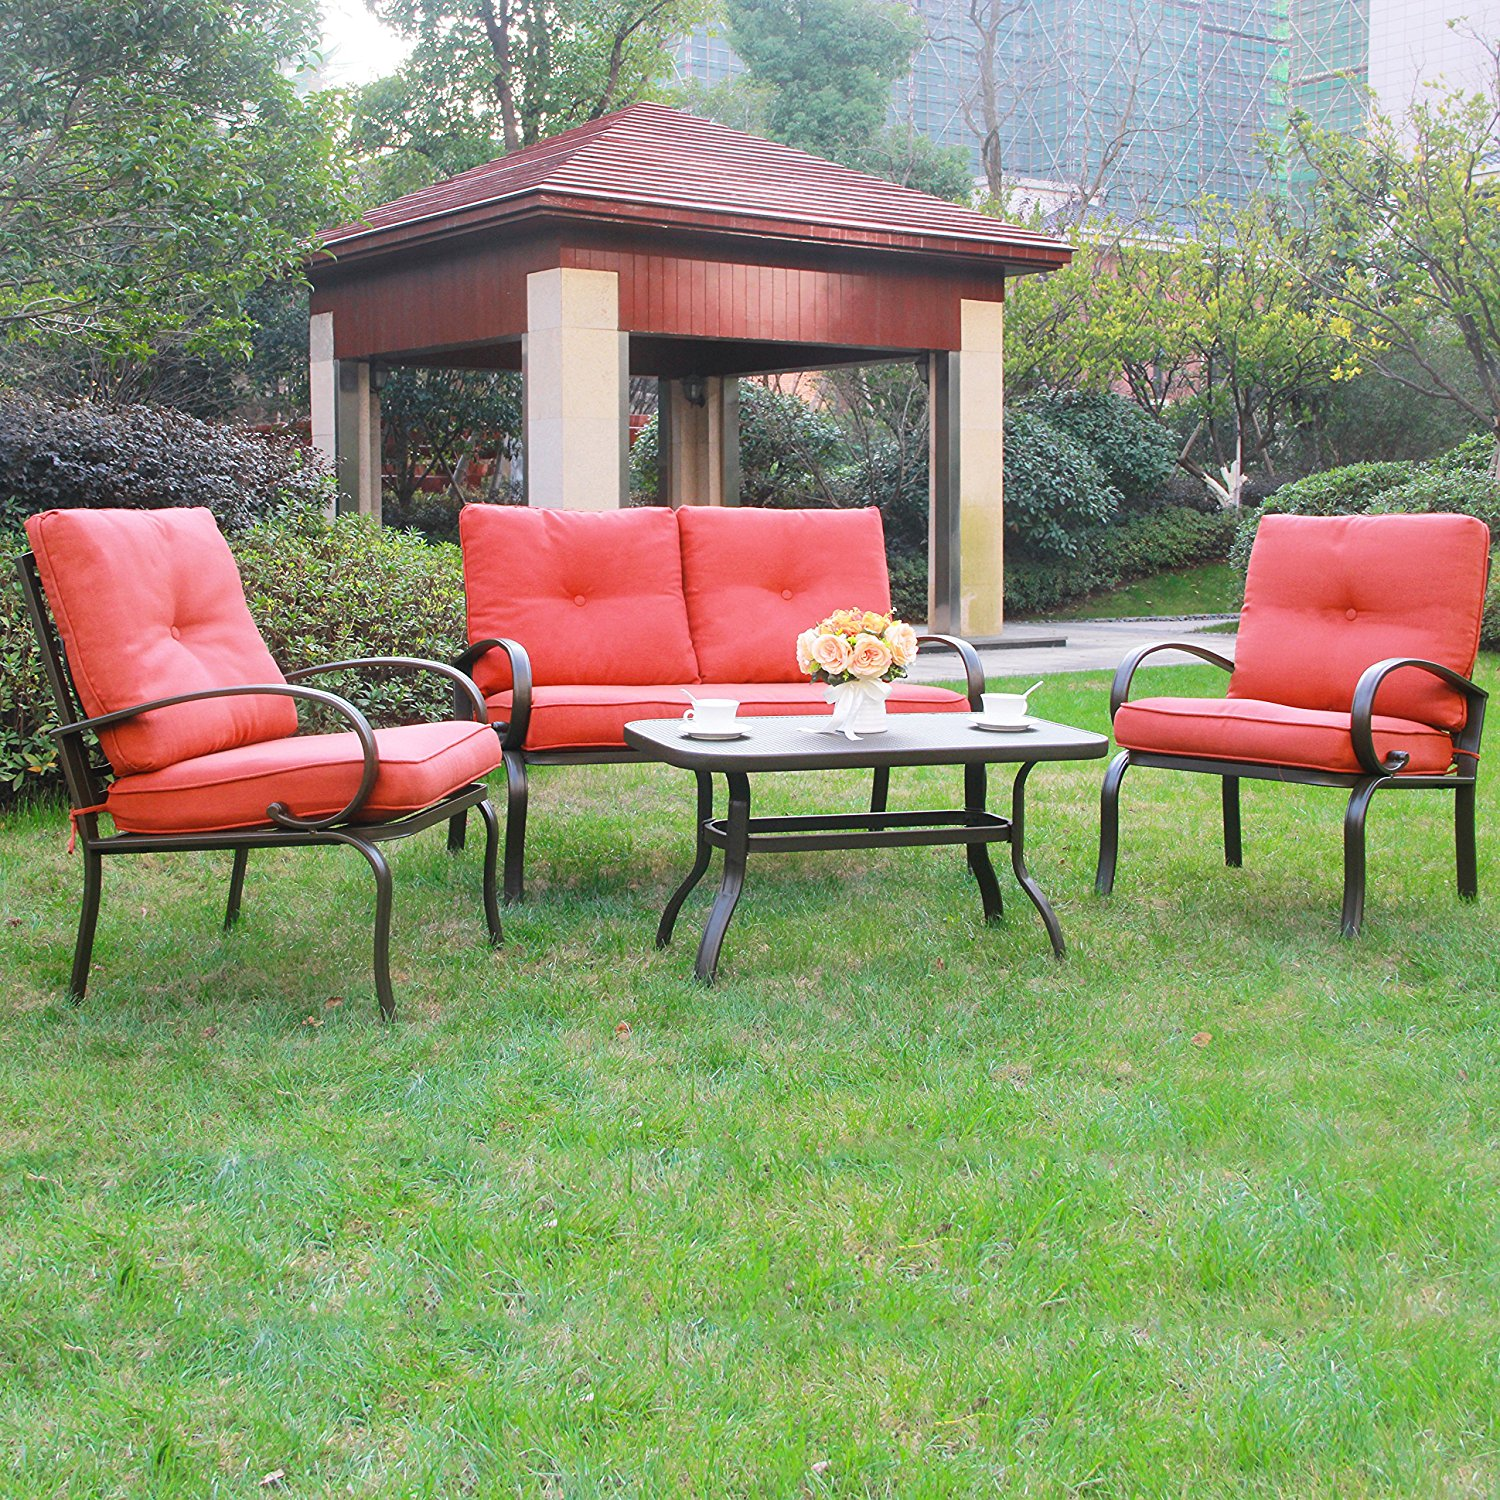 Wrought Iron Patio Furniture For Home Backyard Cool